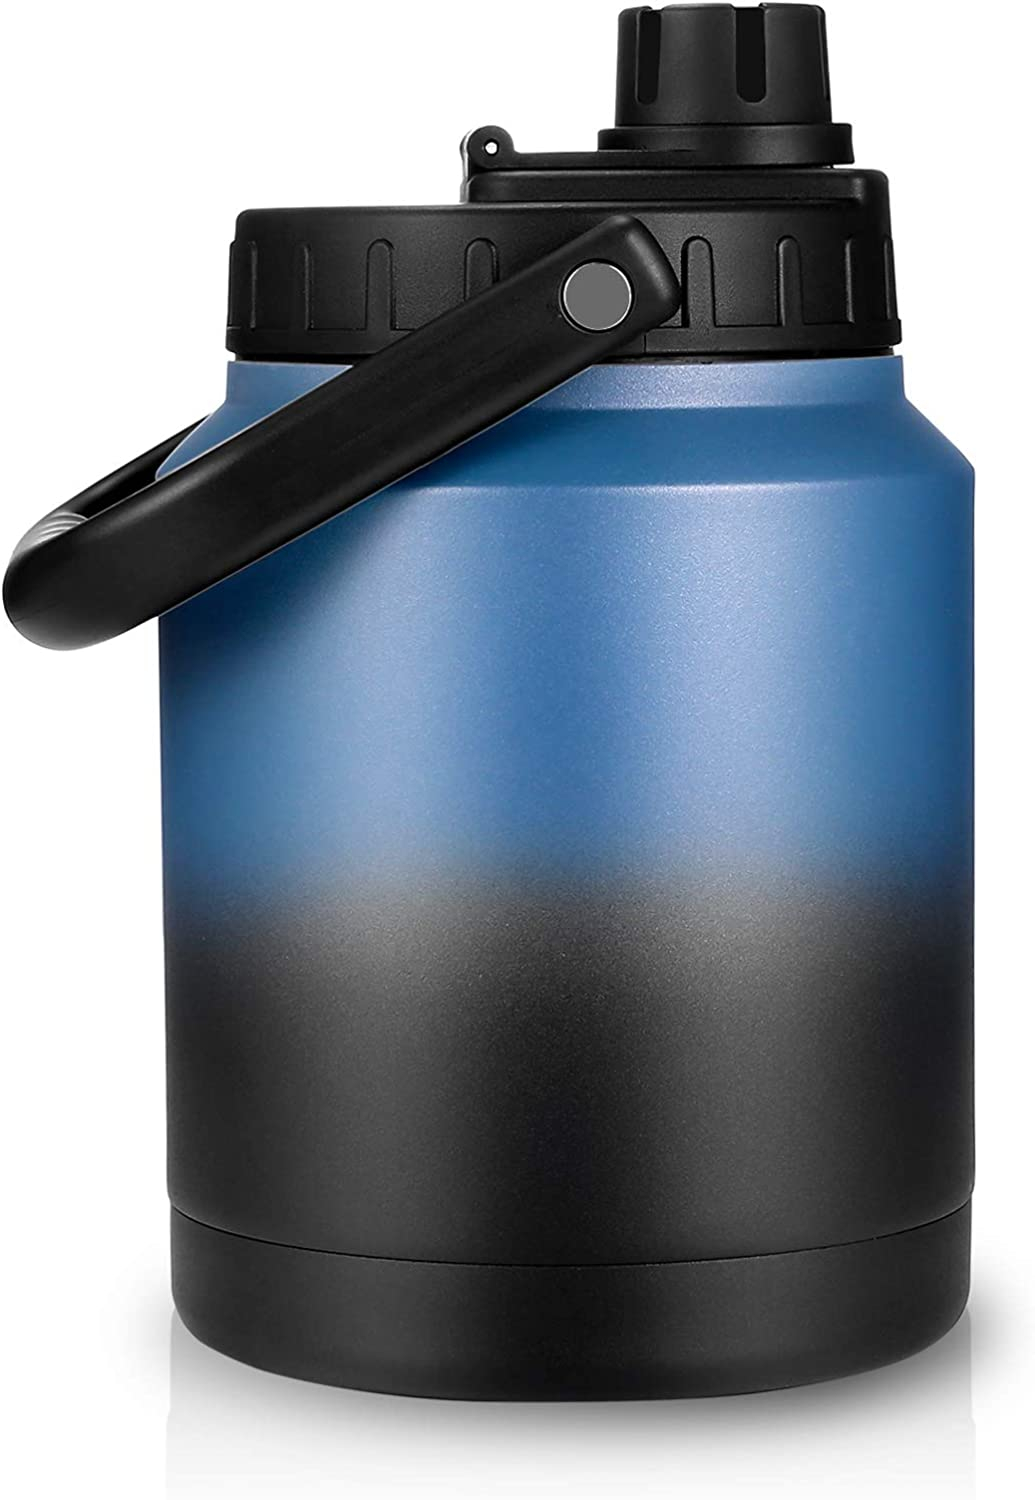 Sursip 64 Oz Vacuum Insulated Water Jug,Half Gallon Stainless Steel Double Walled Water Bottle,18/8 Food-Grade Insulated Water Bottle ,Travel Drinking Water Flask-Blue&Black